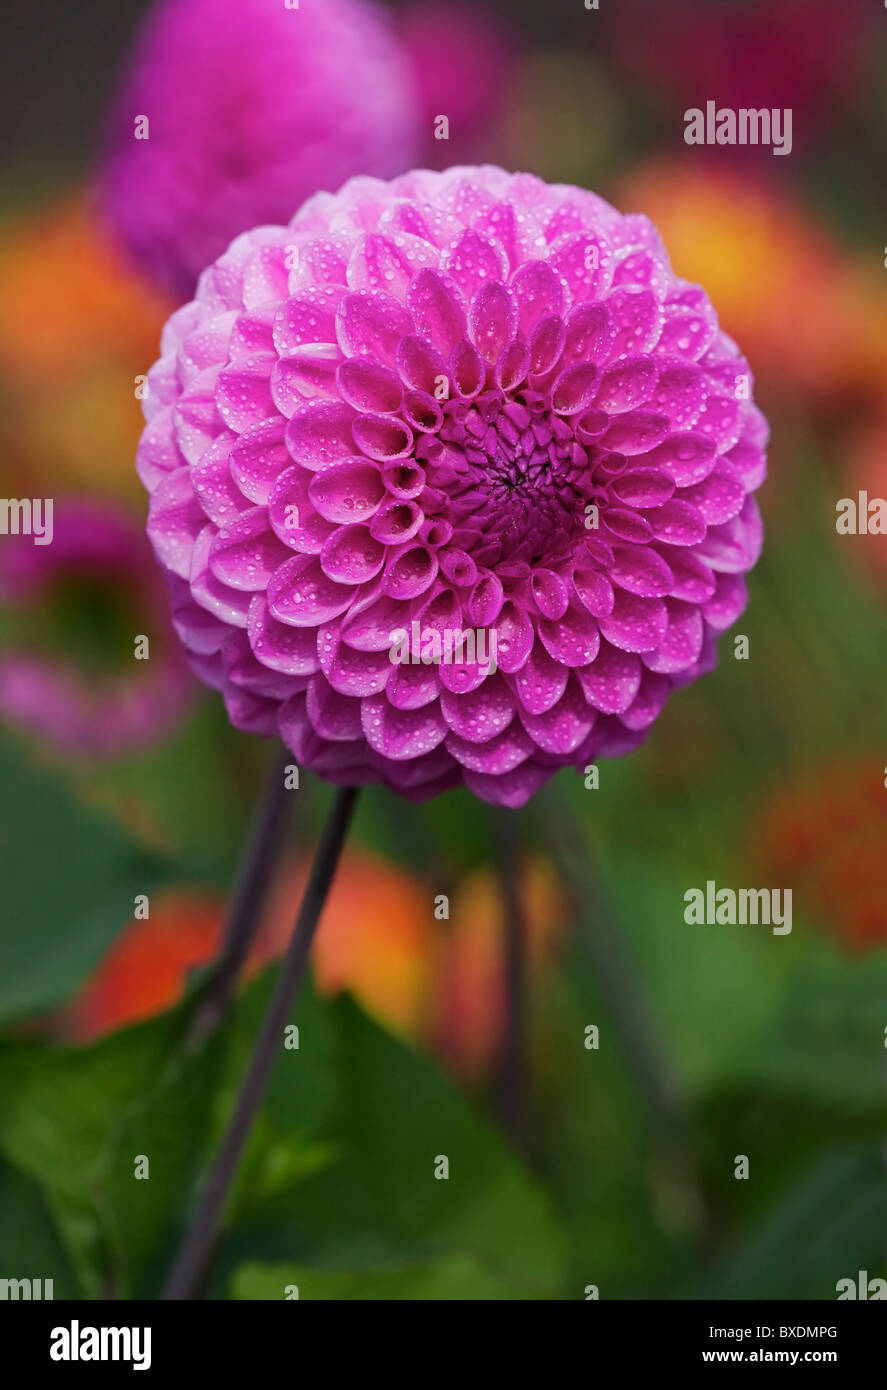 Dahlia buds stock photos dahlia buds stock images alamy pink dahlia flower blooming in the late summerearly autumn season stock image izmirmasajfo